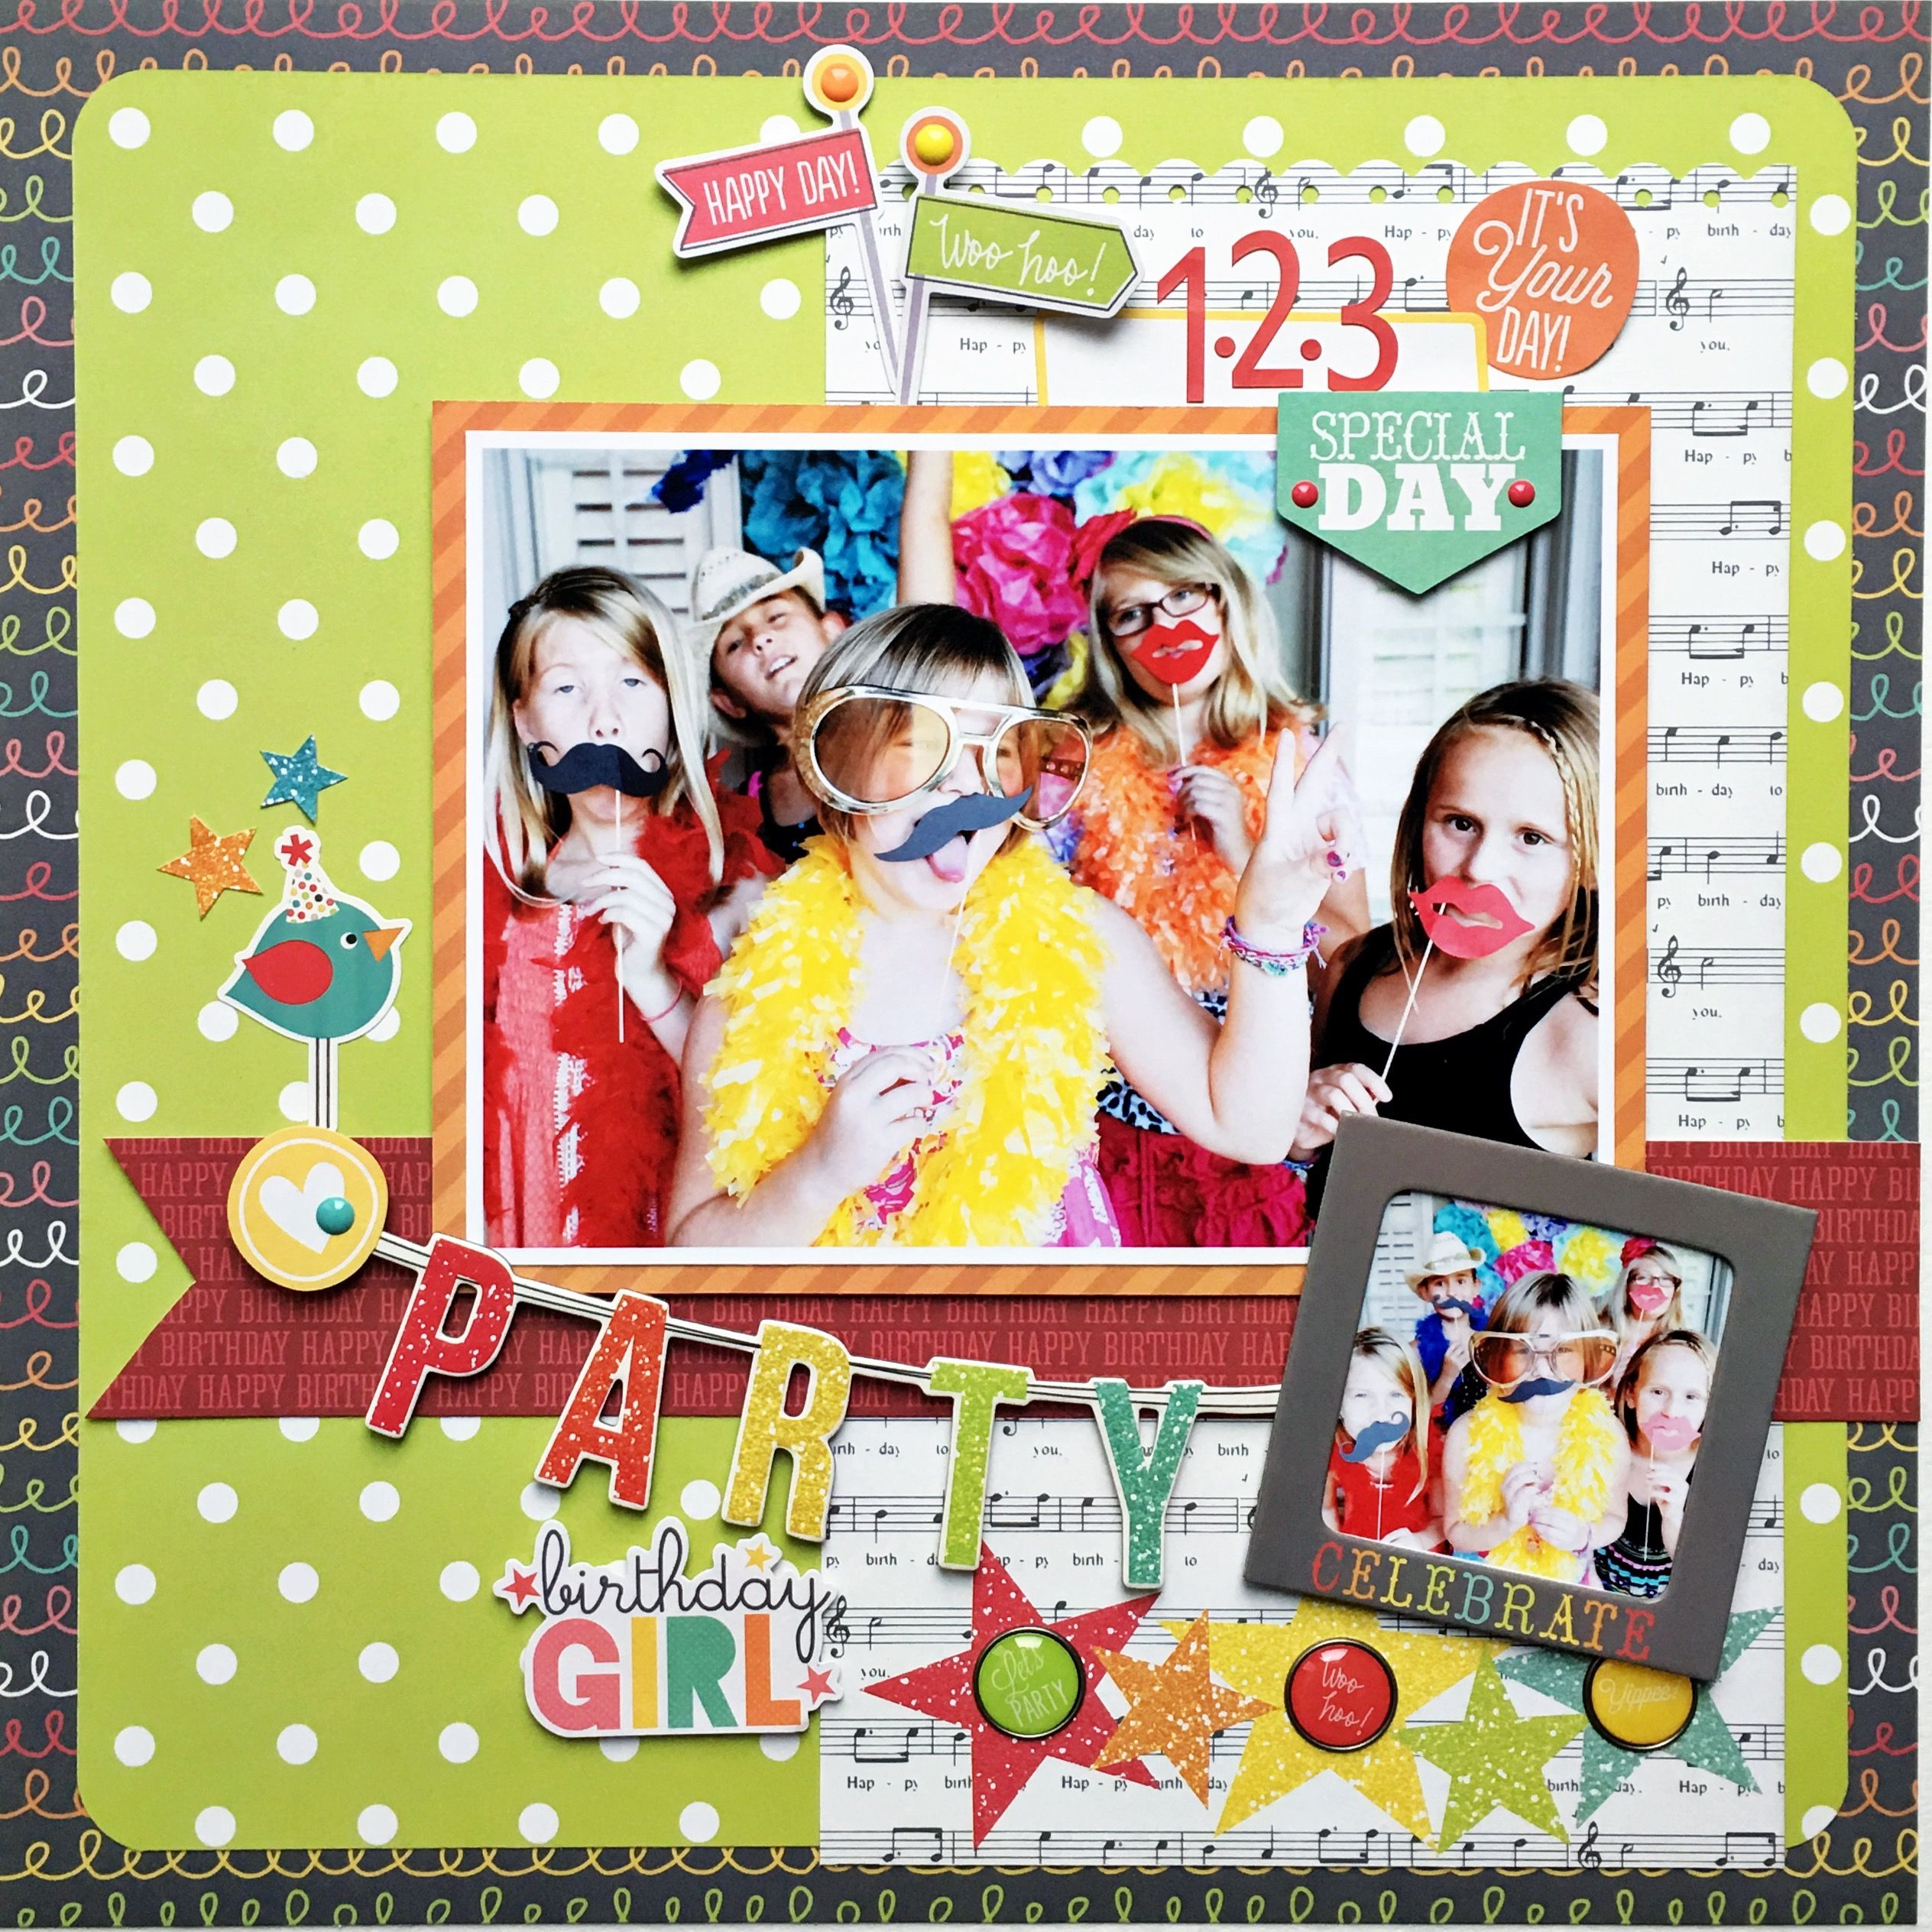 Party Girl Layout